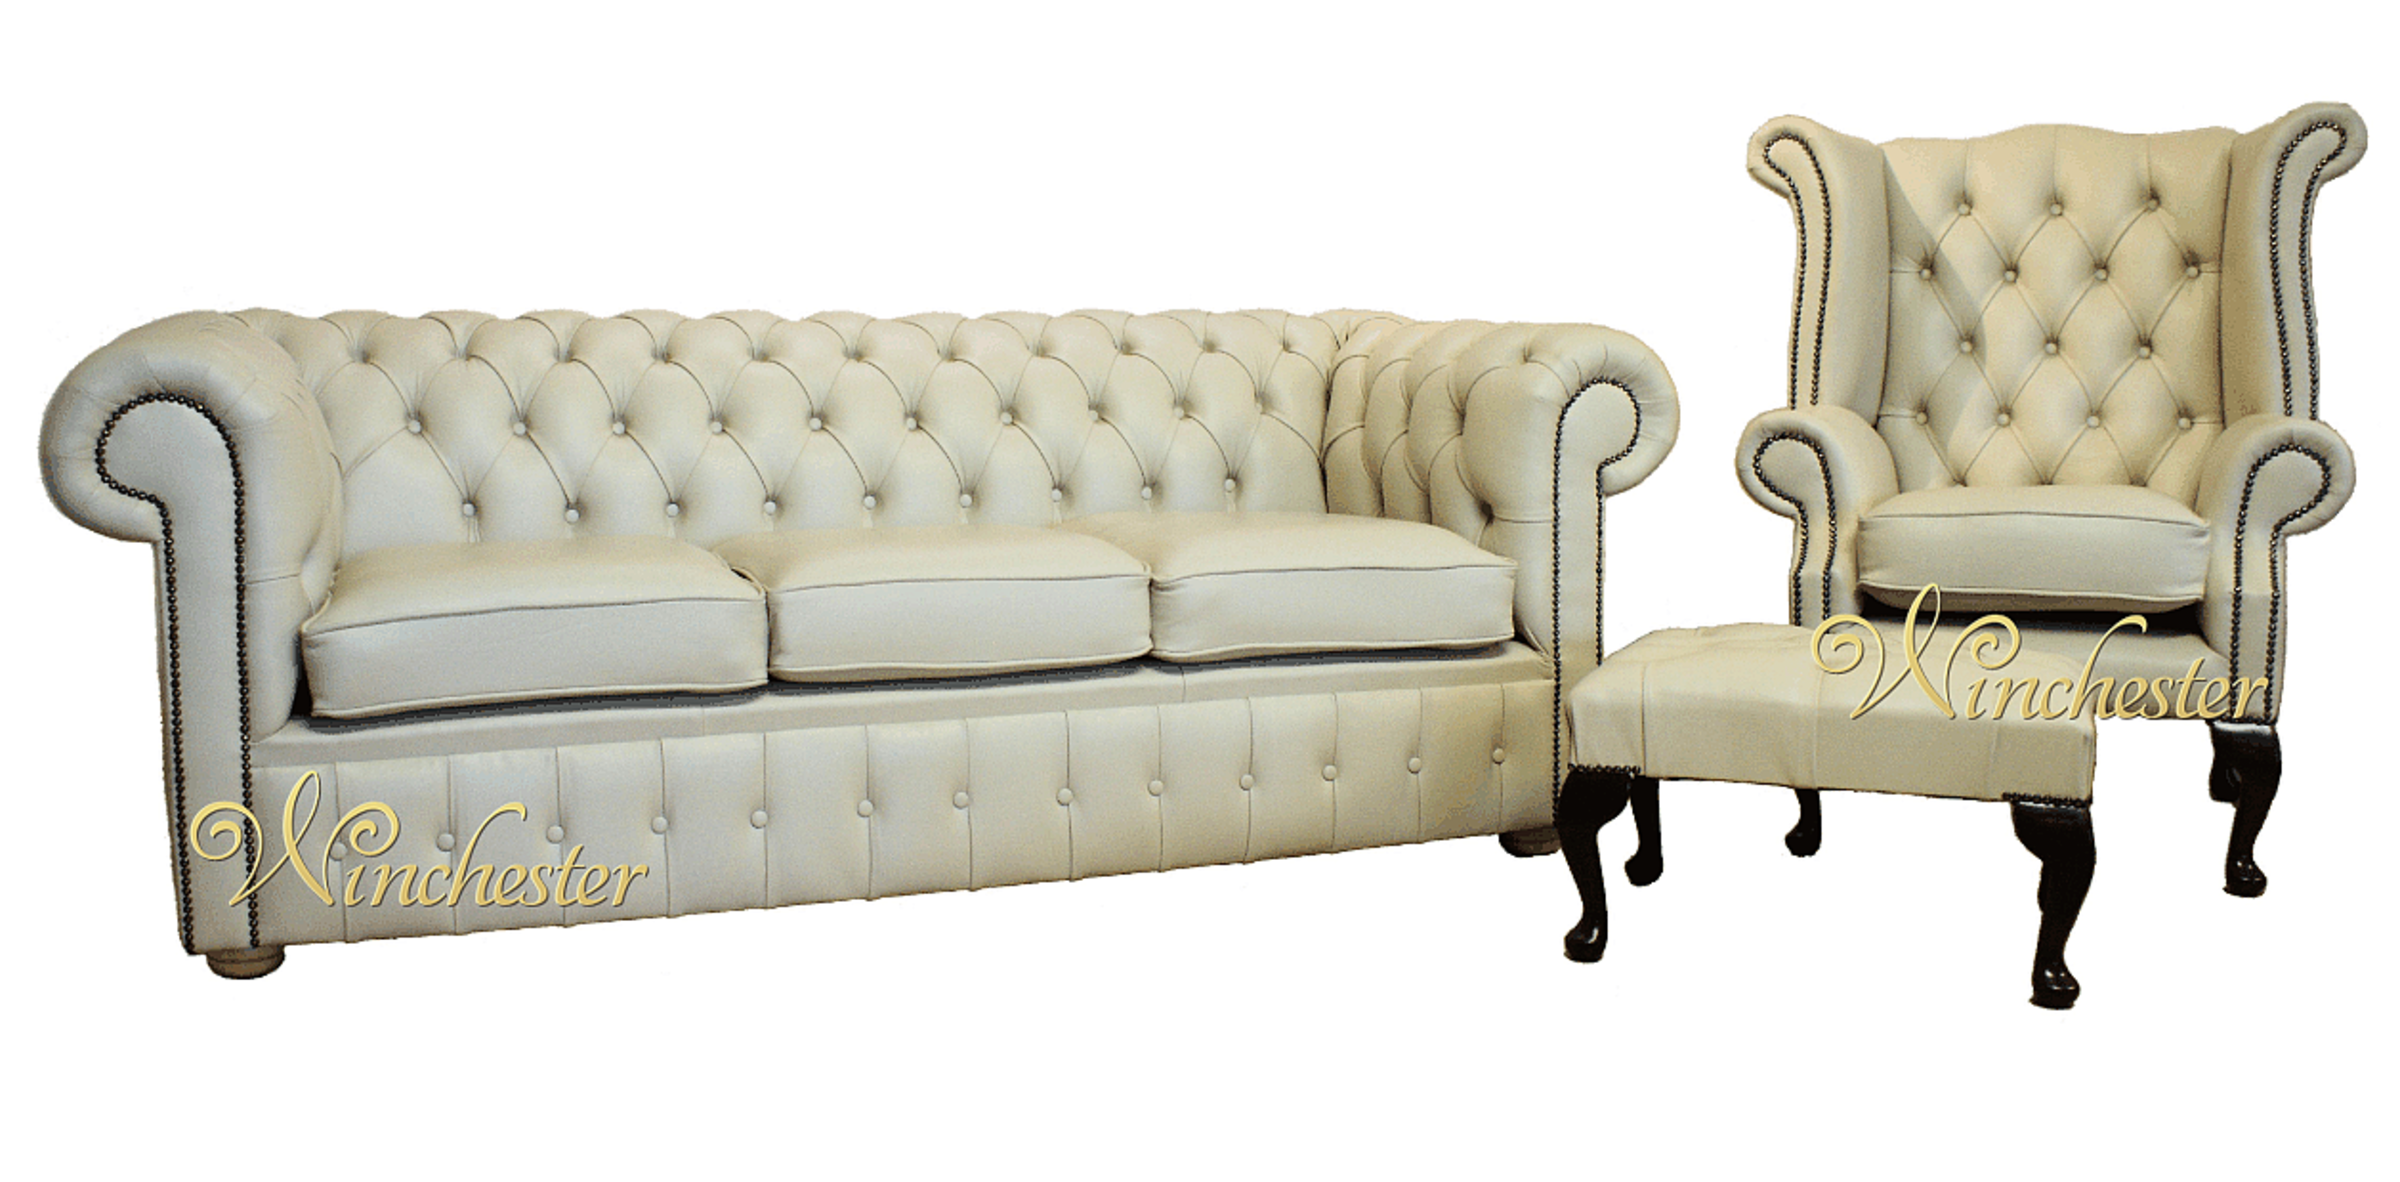 Merveilleux Chesterfield Cream Leather Sofa Offer 3+1+ Footstool, Leather Sofas,  Traditional Sofas